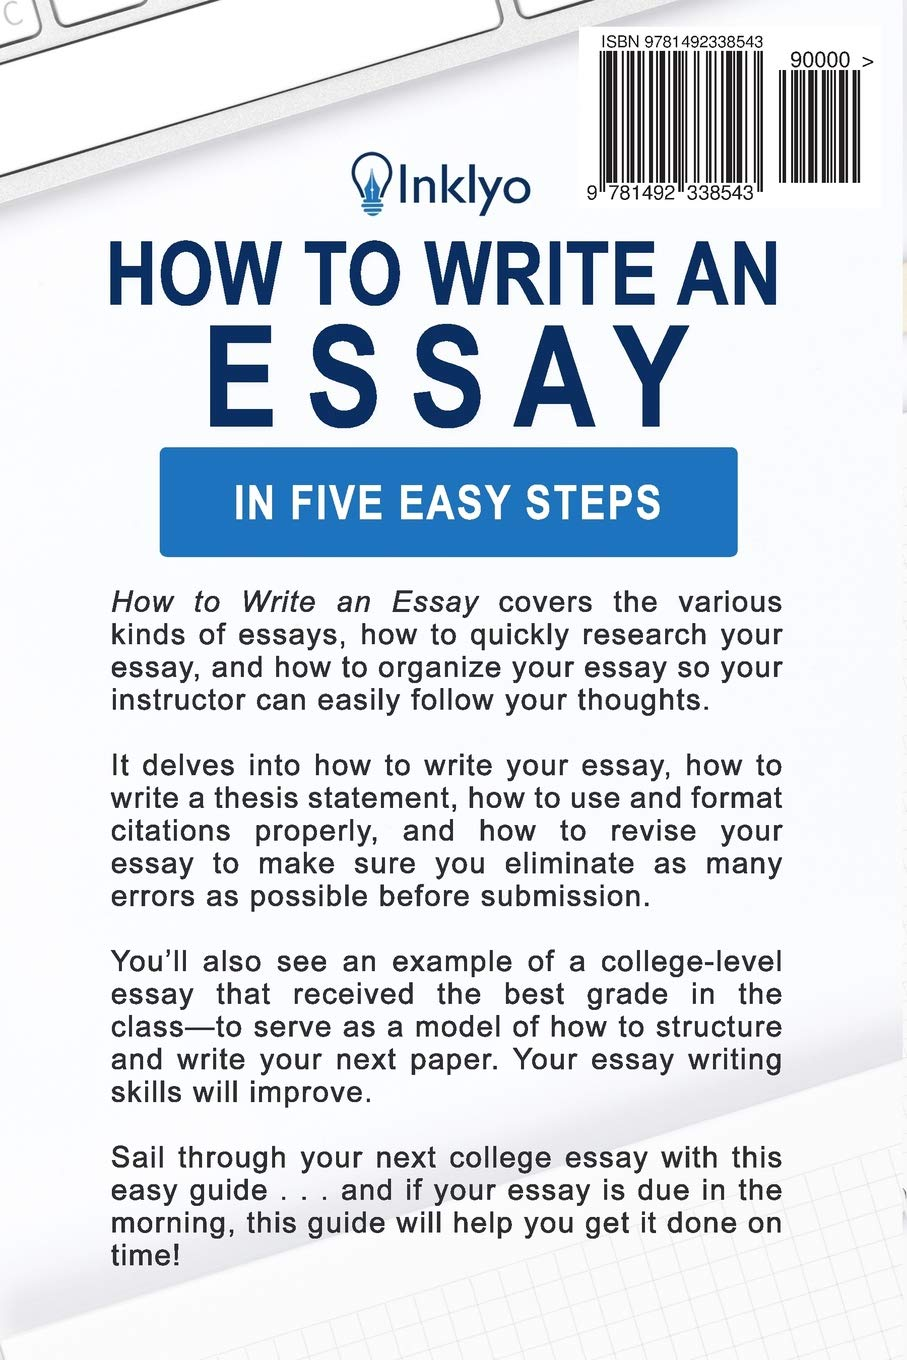 003 How To Write Essay Example Archaicawful A Introduction Fast Synthesis Outline Full